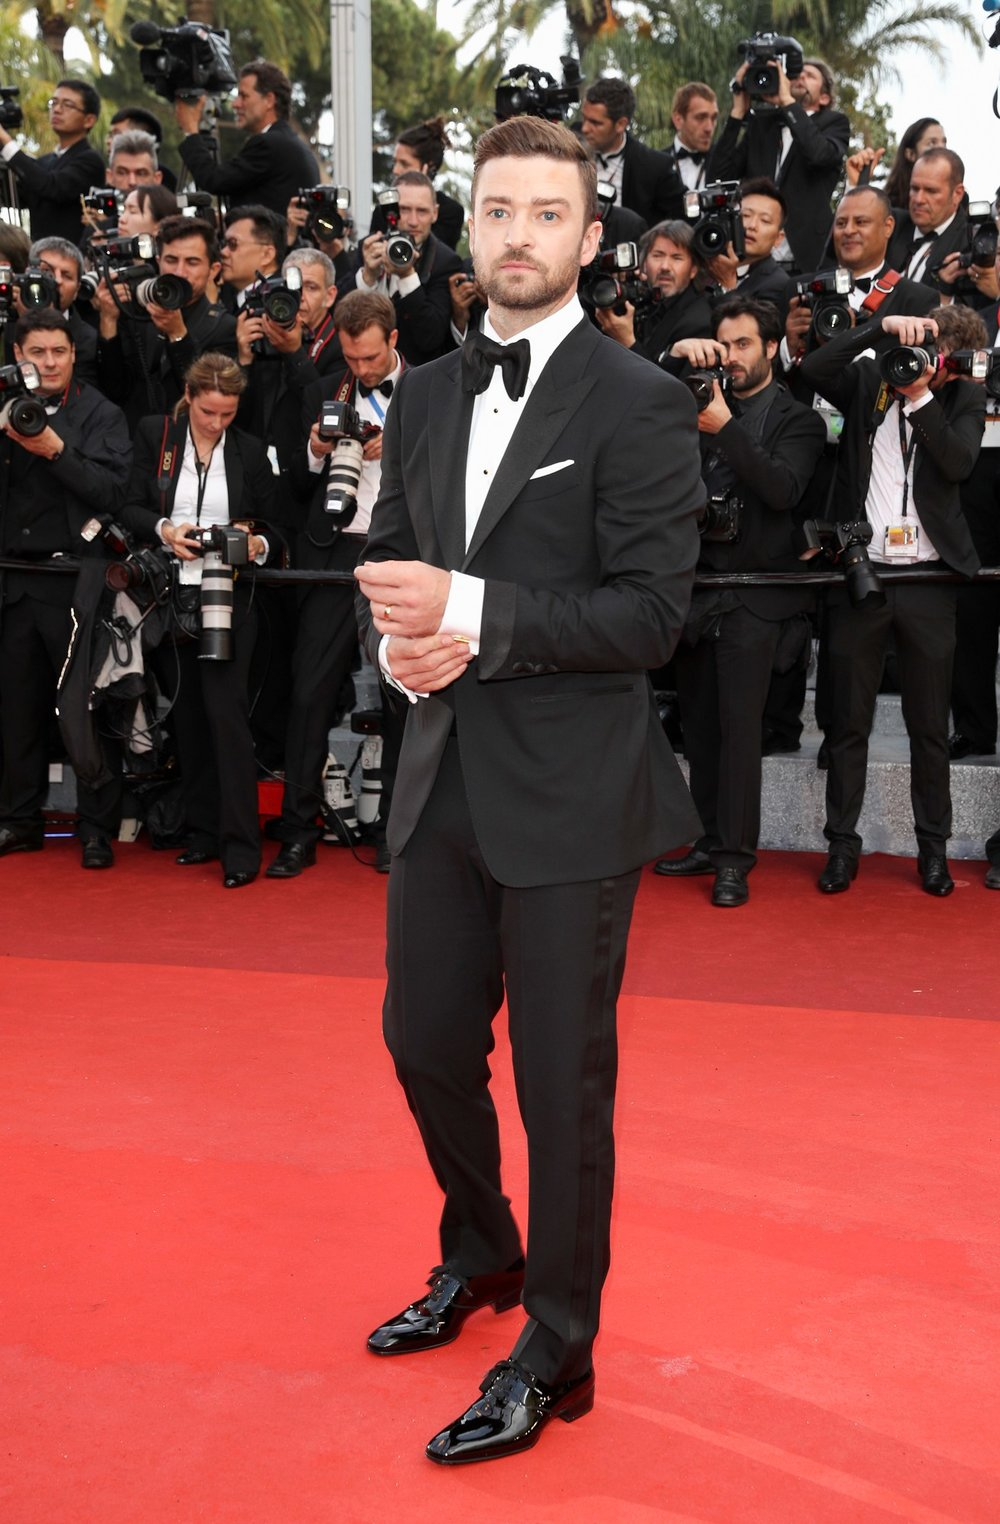 Cannes-best-dressed-02.jpg